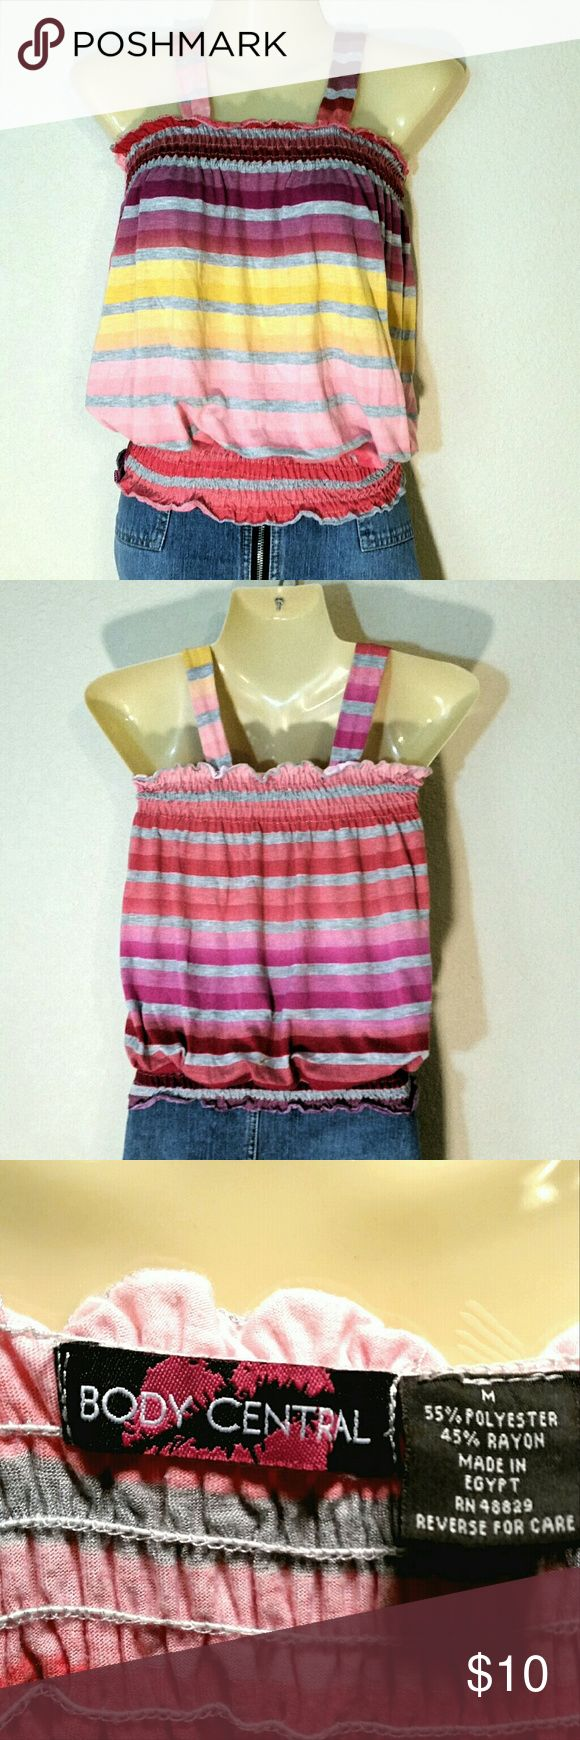 Body Central Colorful Top Vibrant stripes make this knit sleeveless top a summer must have! Body Central Tops Camisoles